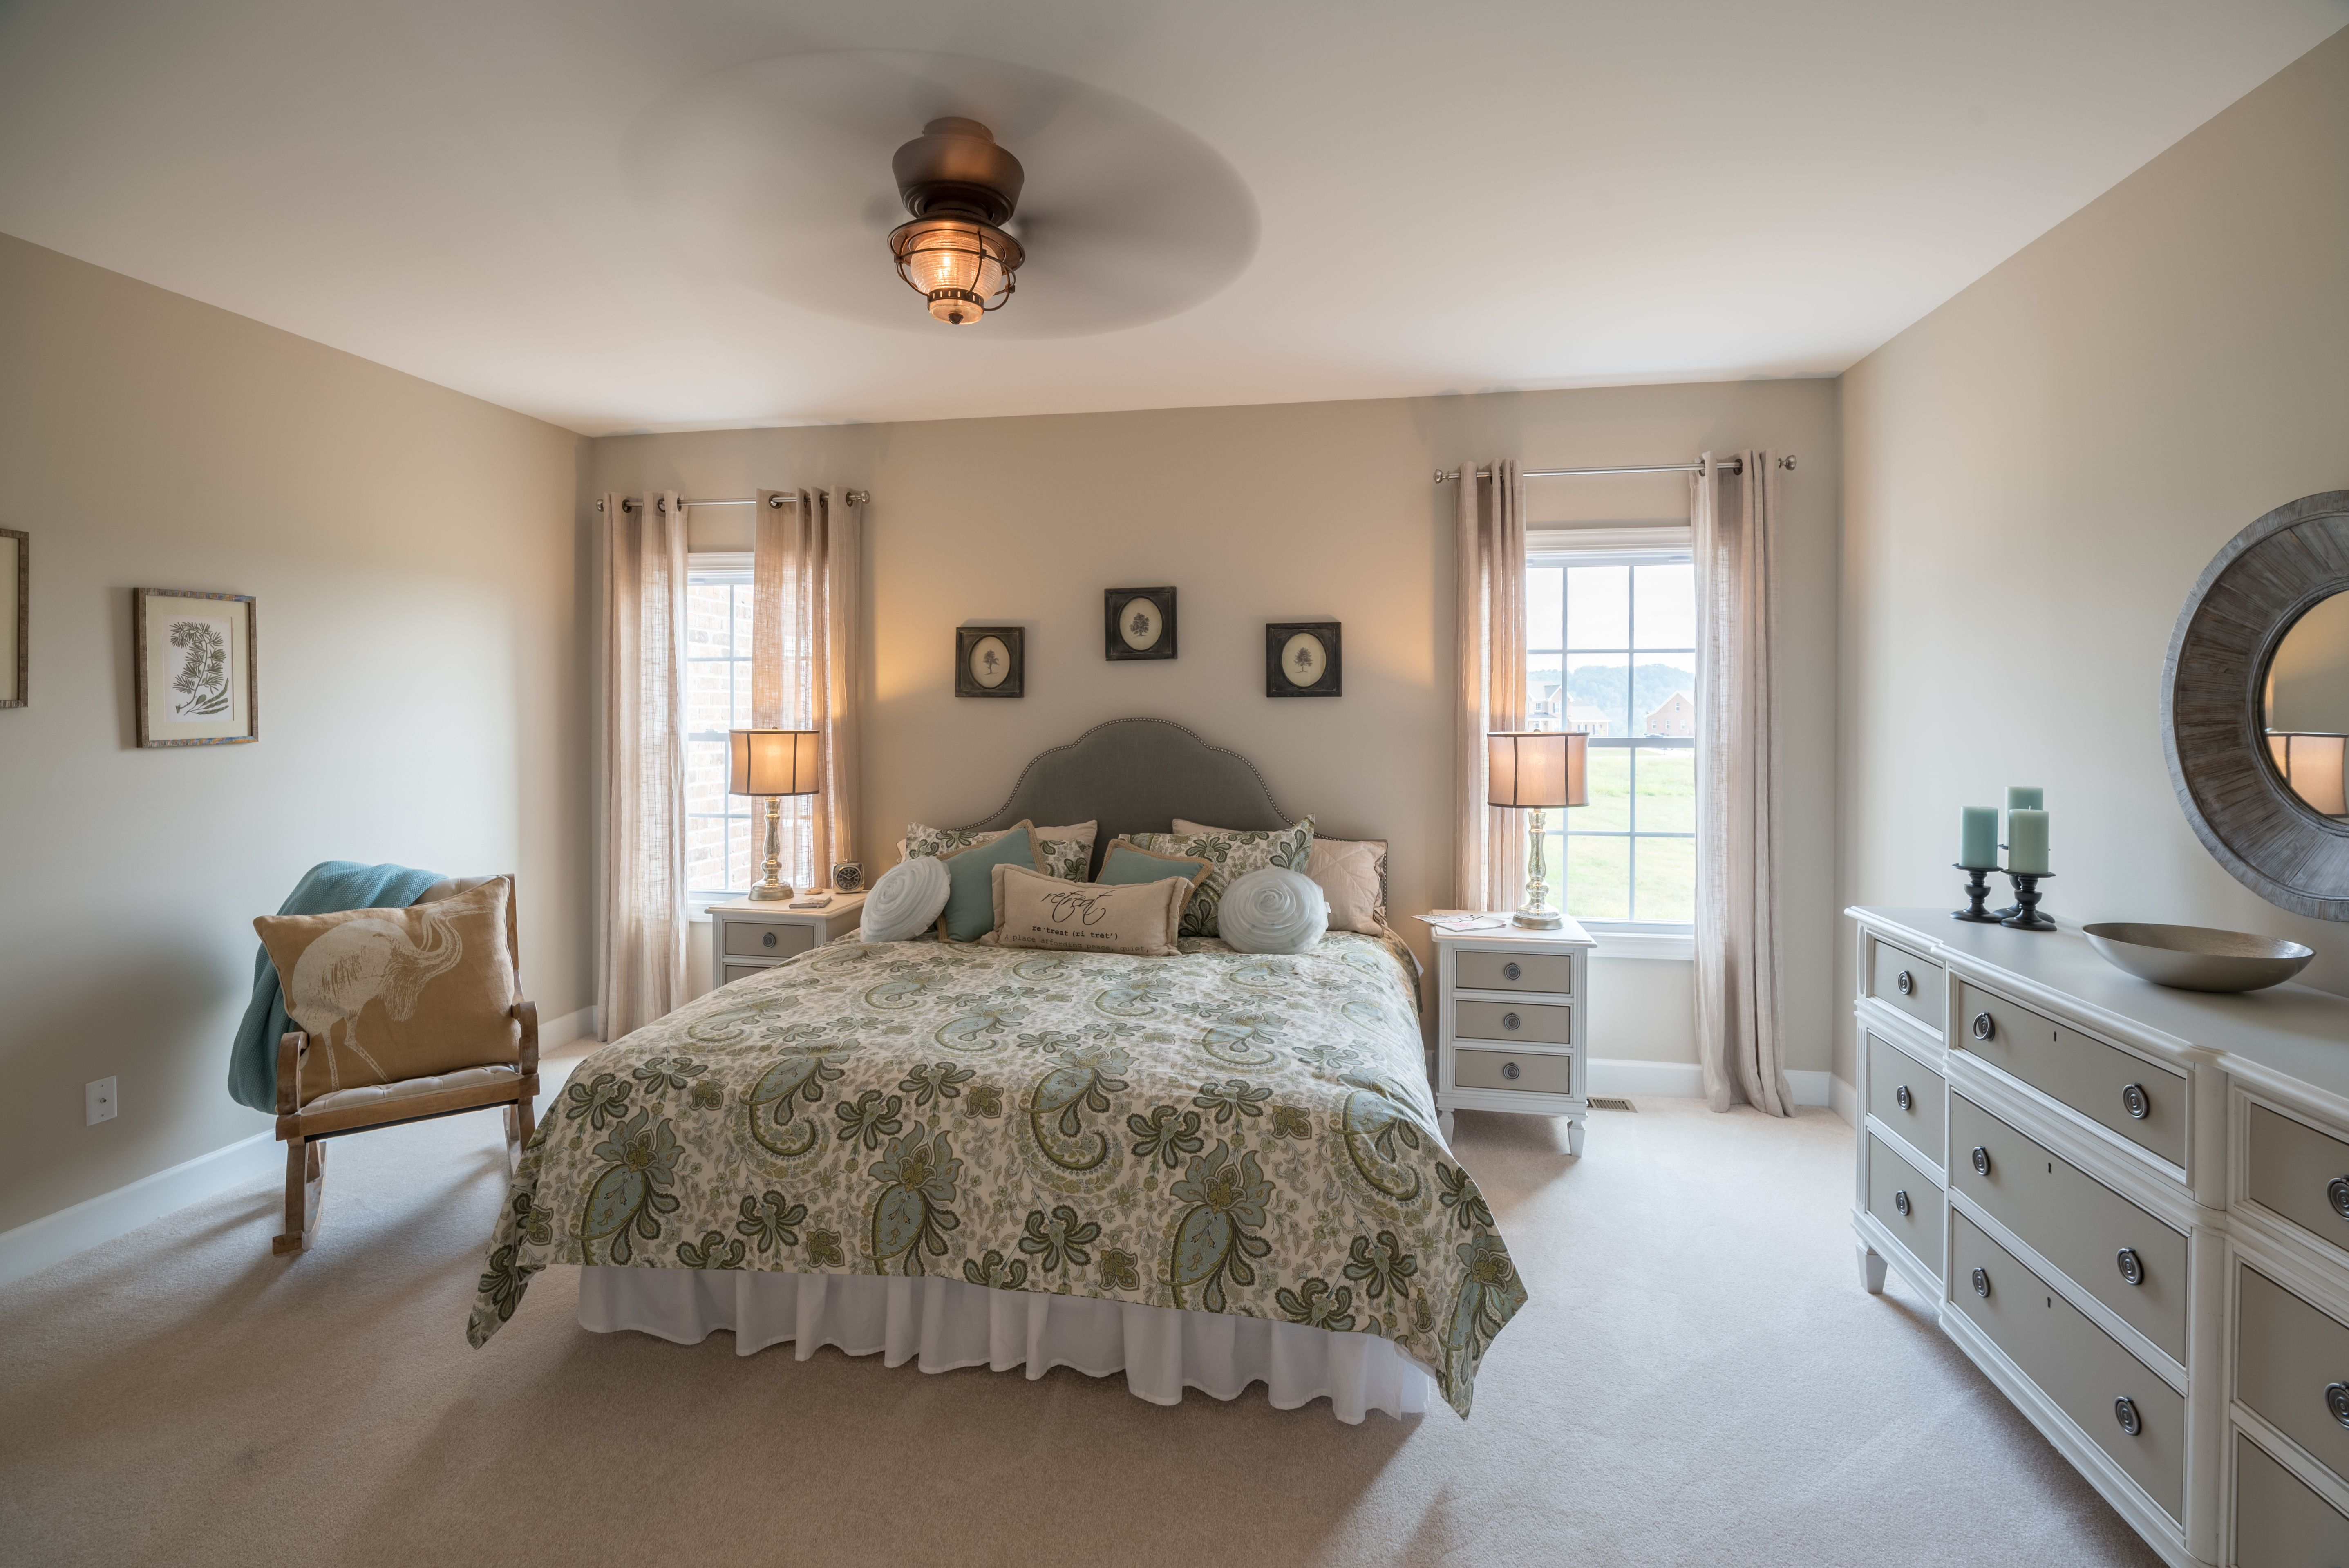 Bedroom featured in The Bedford By Stateson Homes in Roanoke, VA